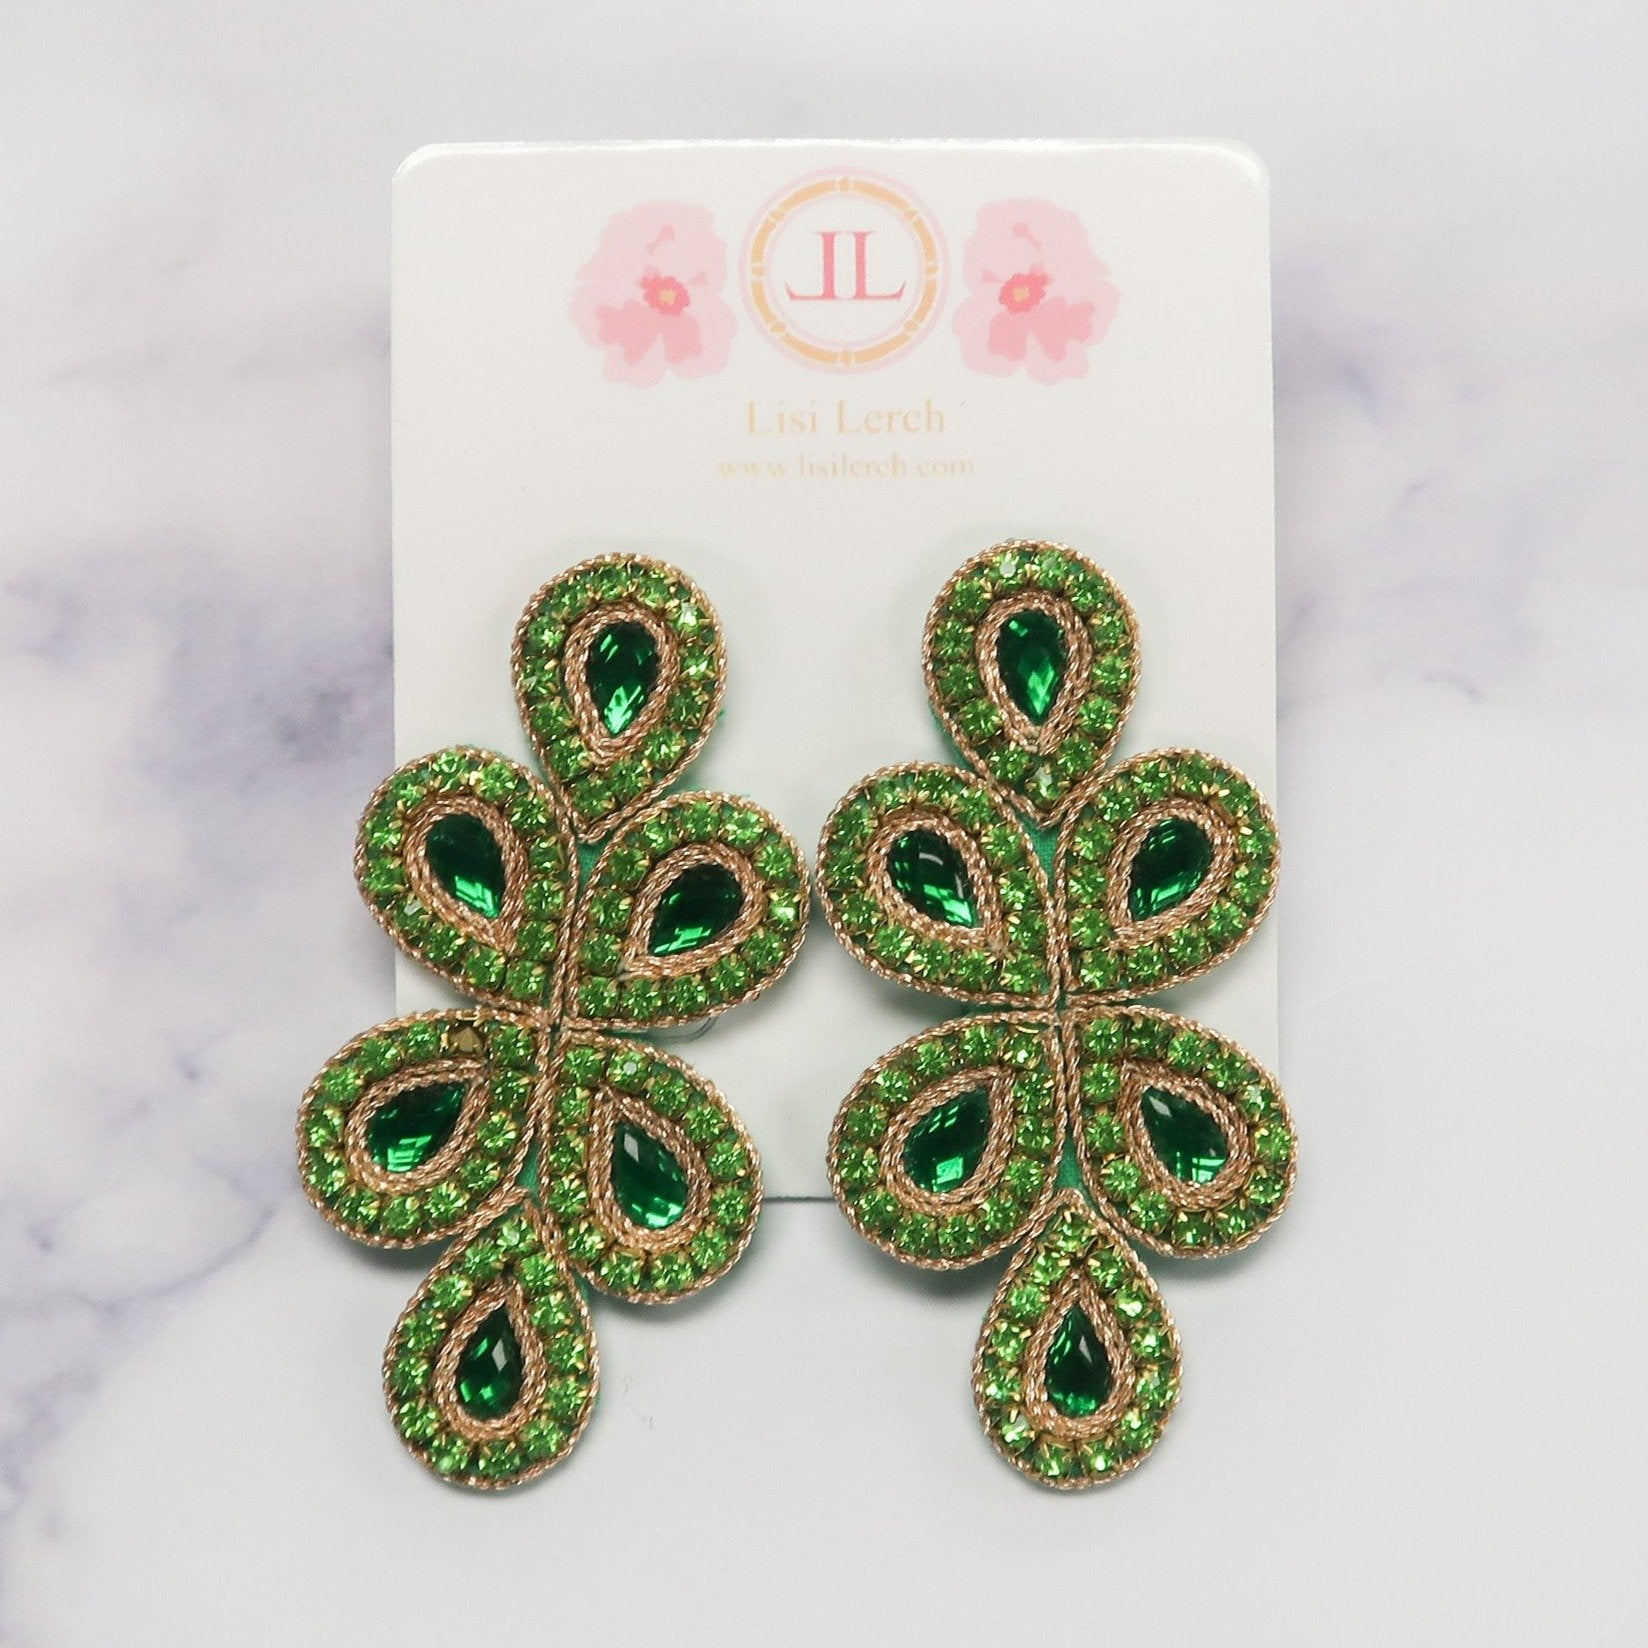 Ginger Beaded Emerald Earrings by Lisi Lerch